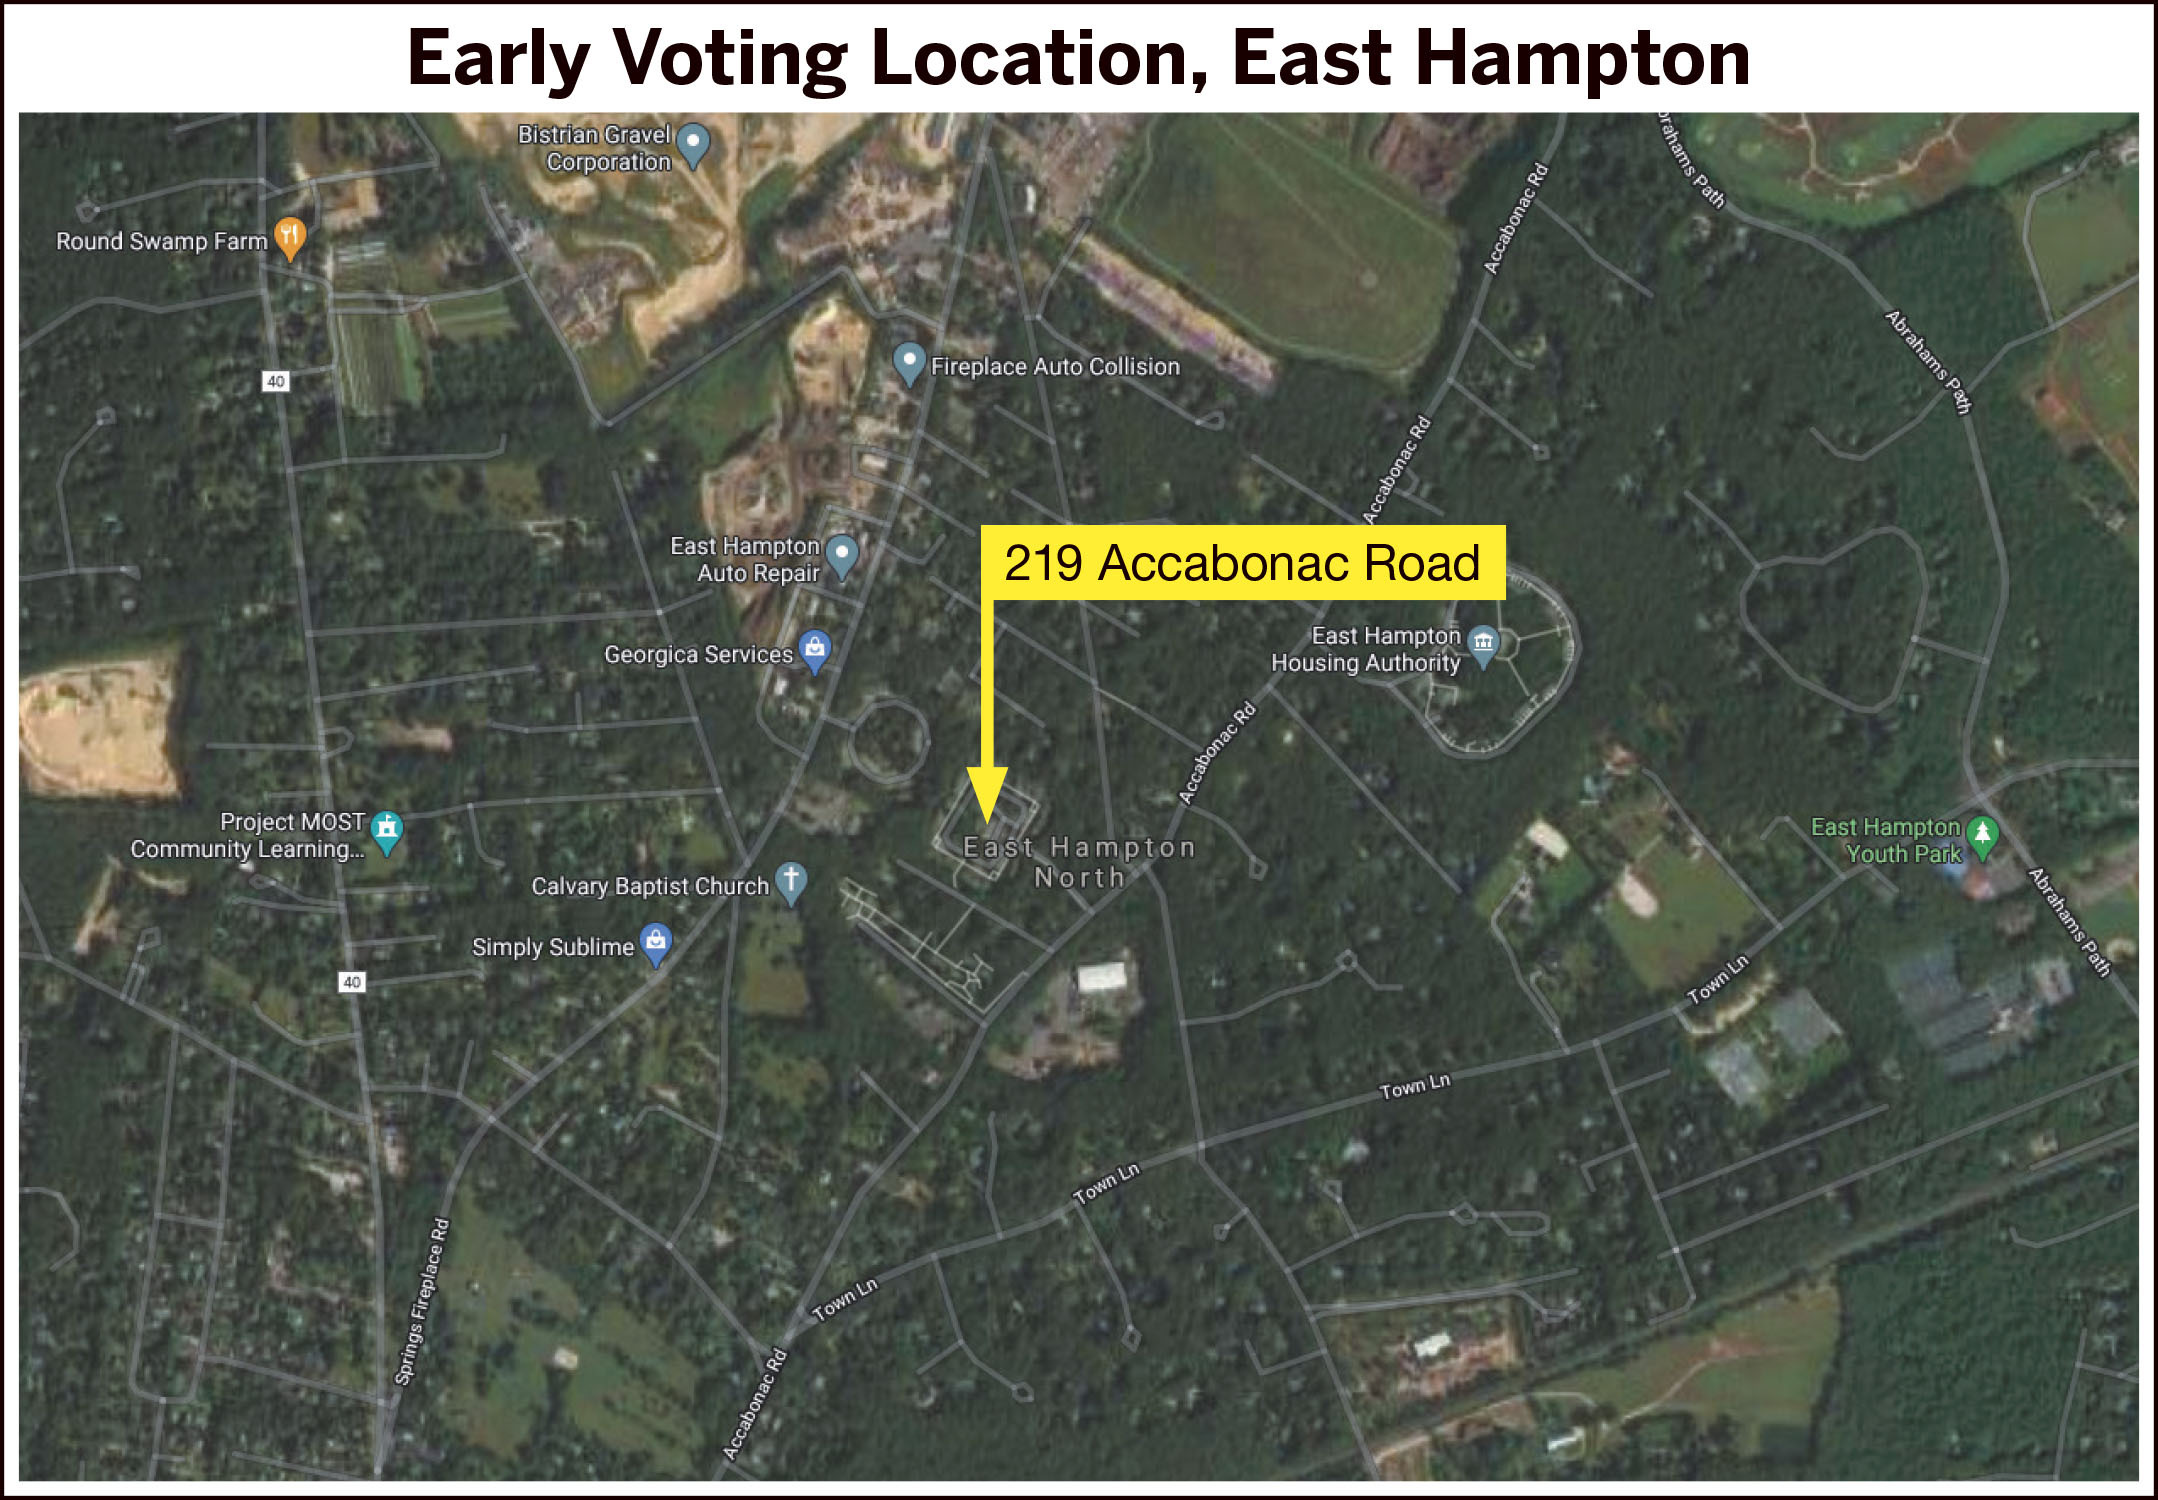 The early voting location in East Hampton is at 219 Accabonac Road at Windmill Village.